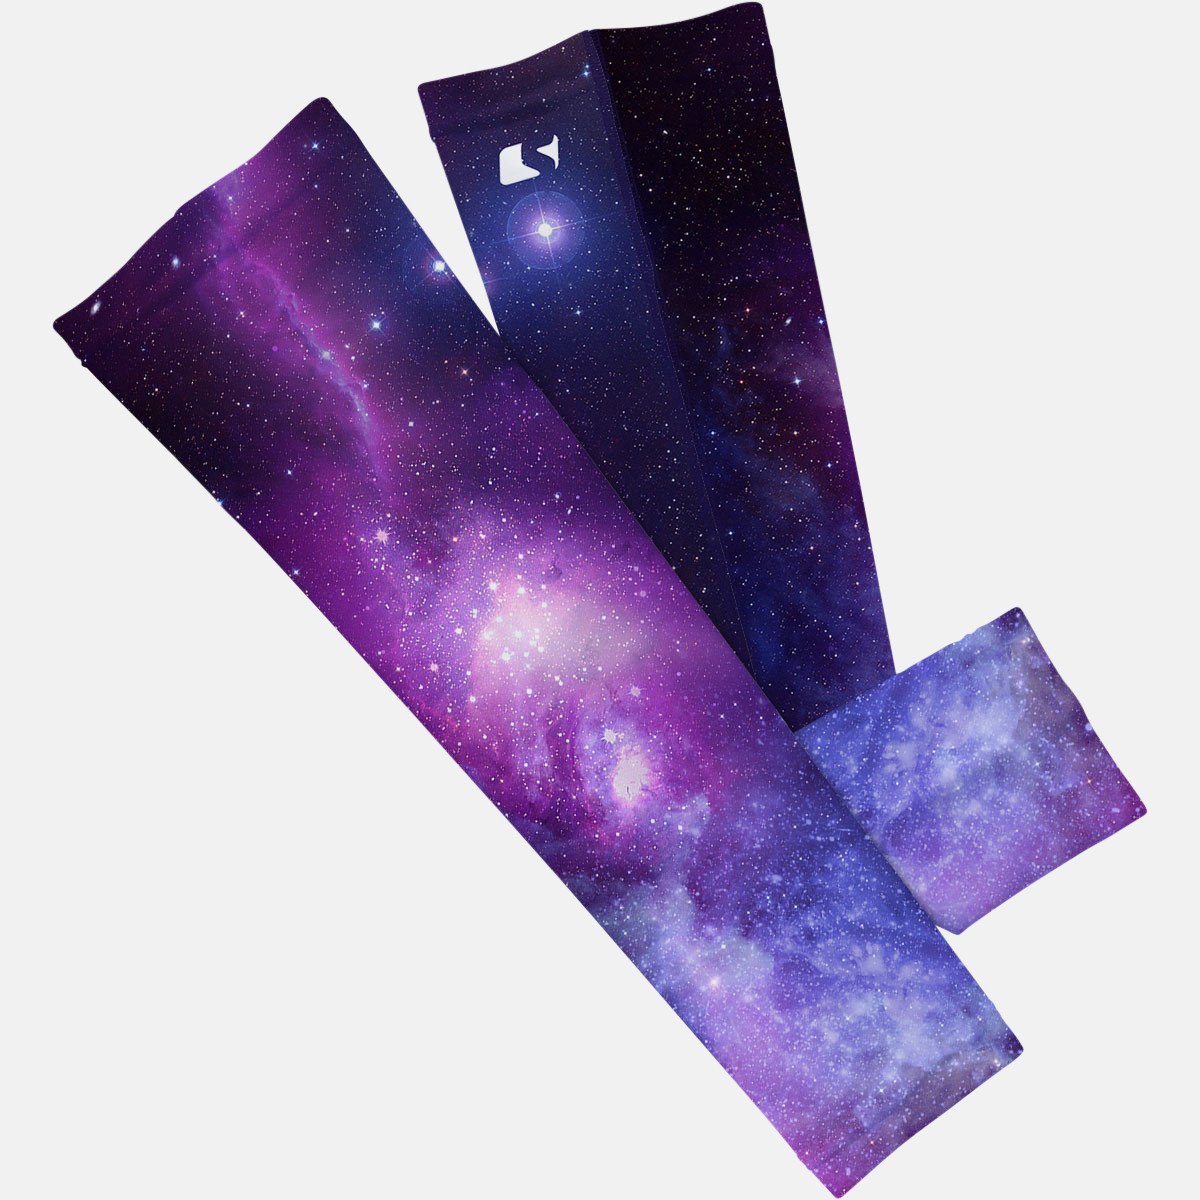 S//M, Nebula - Blue and Other Sports Sleefs Compression Arm Sleeves Provides Sun Protection and is Great for Basketball SLAM-GAL-S-M-1 Football Baseball Single Running